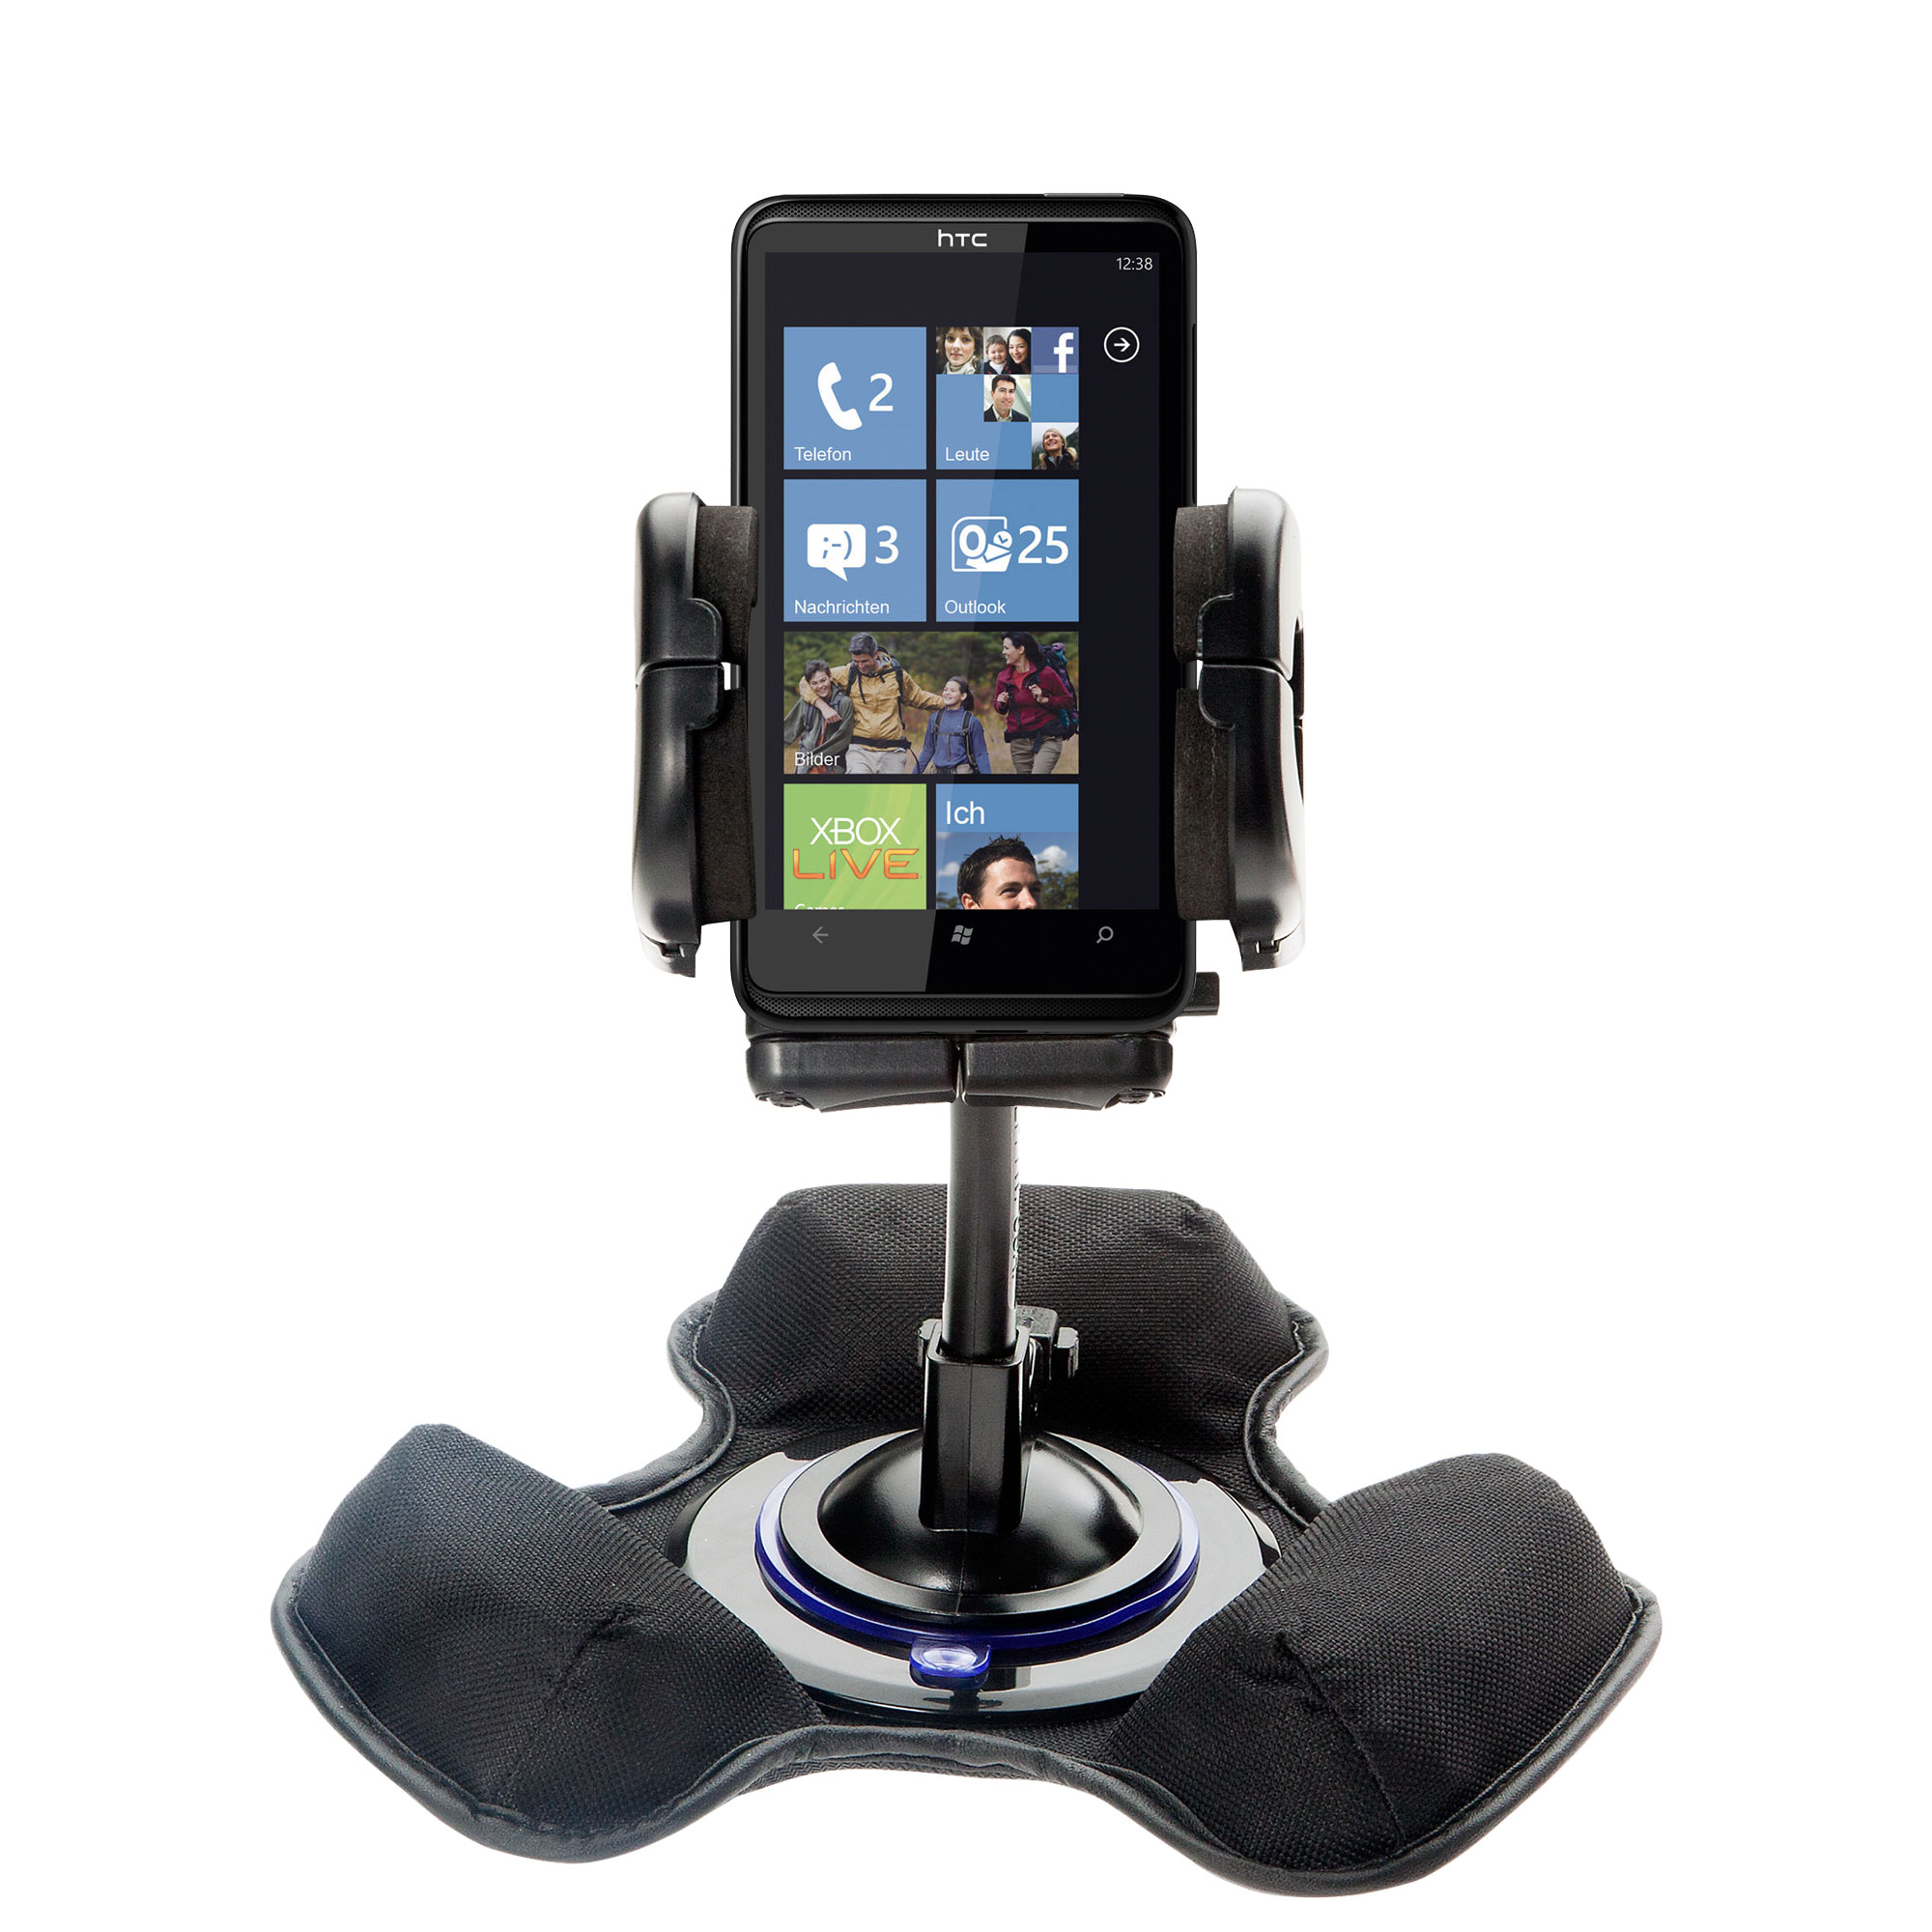 Dash and Windshield Holder compatible with the HTC HD7S